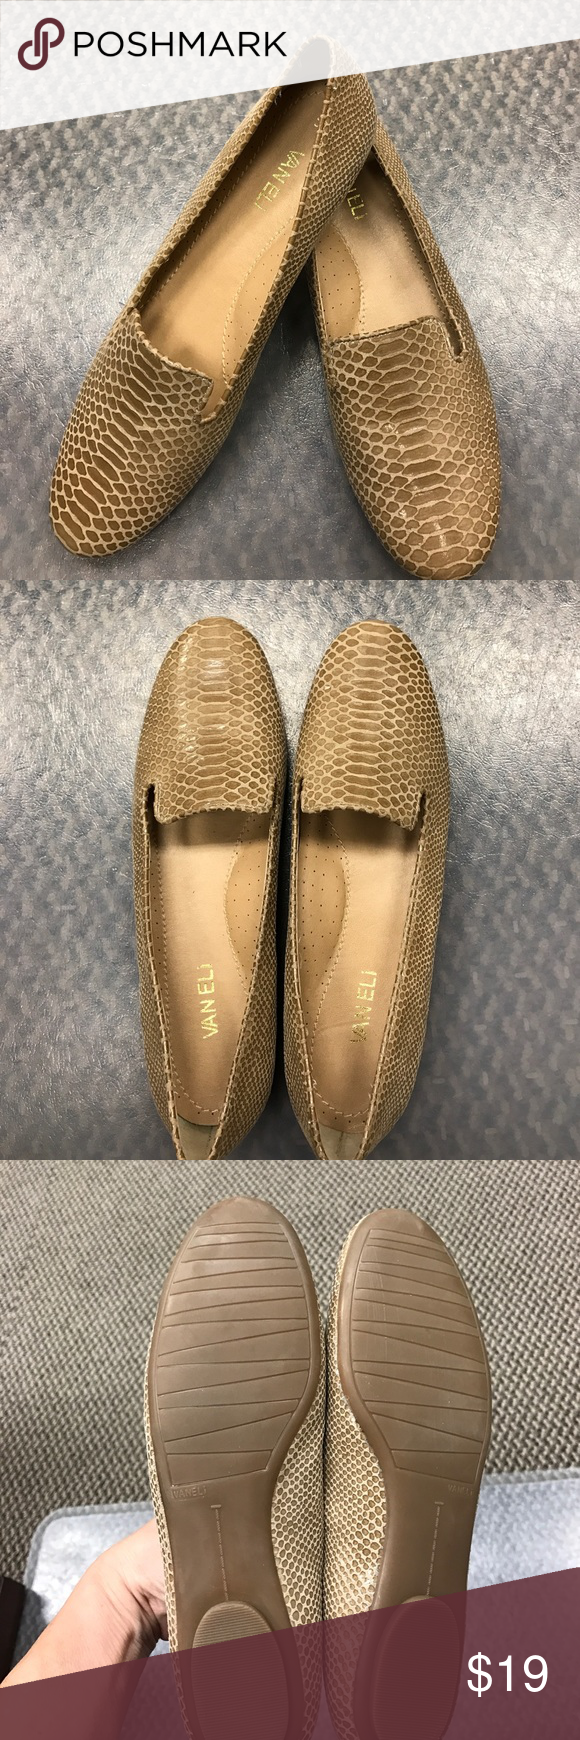 New Flats Vaneli Italian styled Khaki flats never worn. Made for extreme comfort. These are 8.5 narrow and a must have! Vaneli Shoes Flats & Loafers